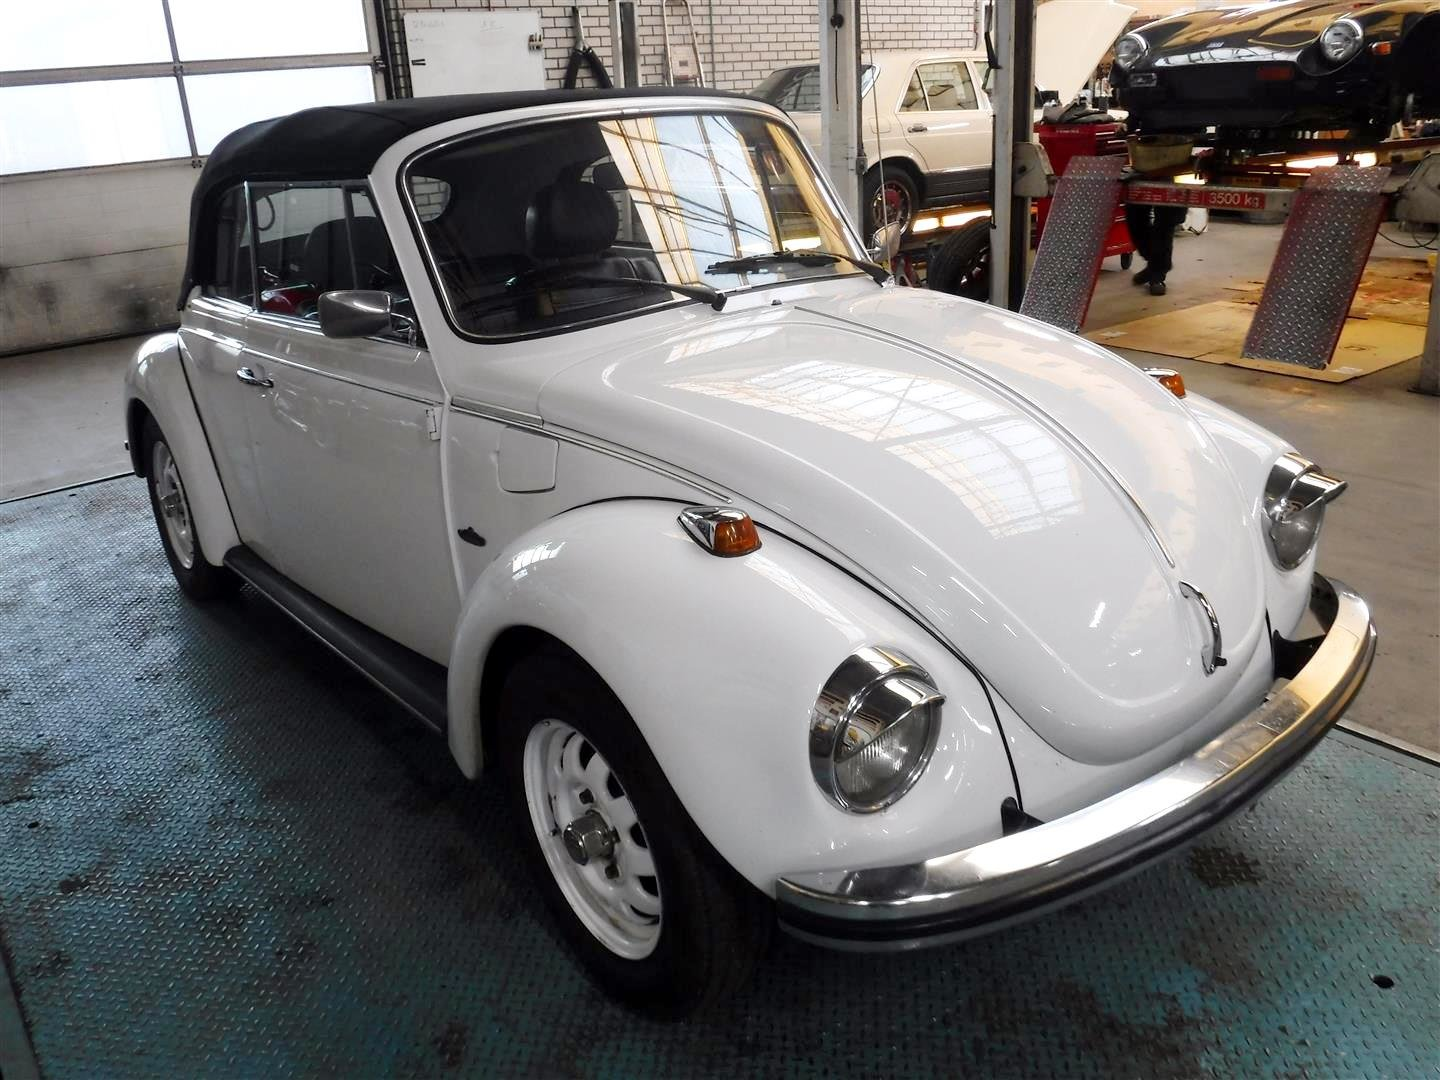 Volkswagen 1303 S convertible 1973 (perfect!) For Sale (picture 1 of 6)